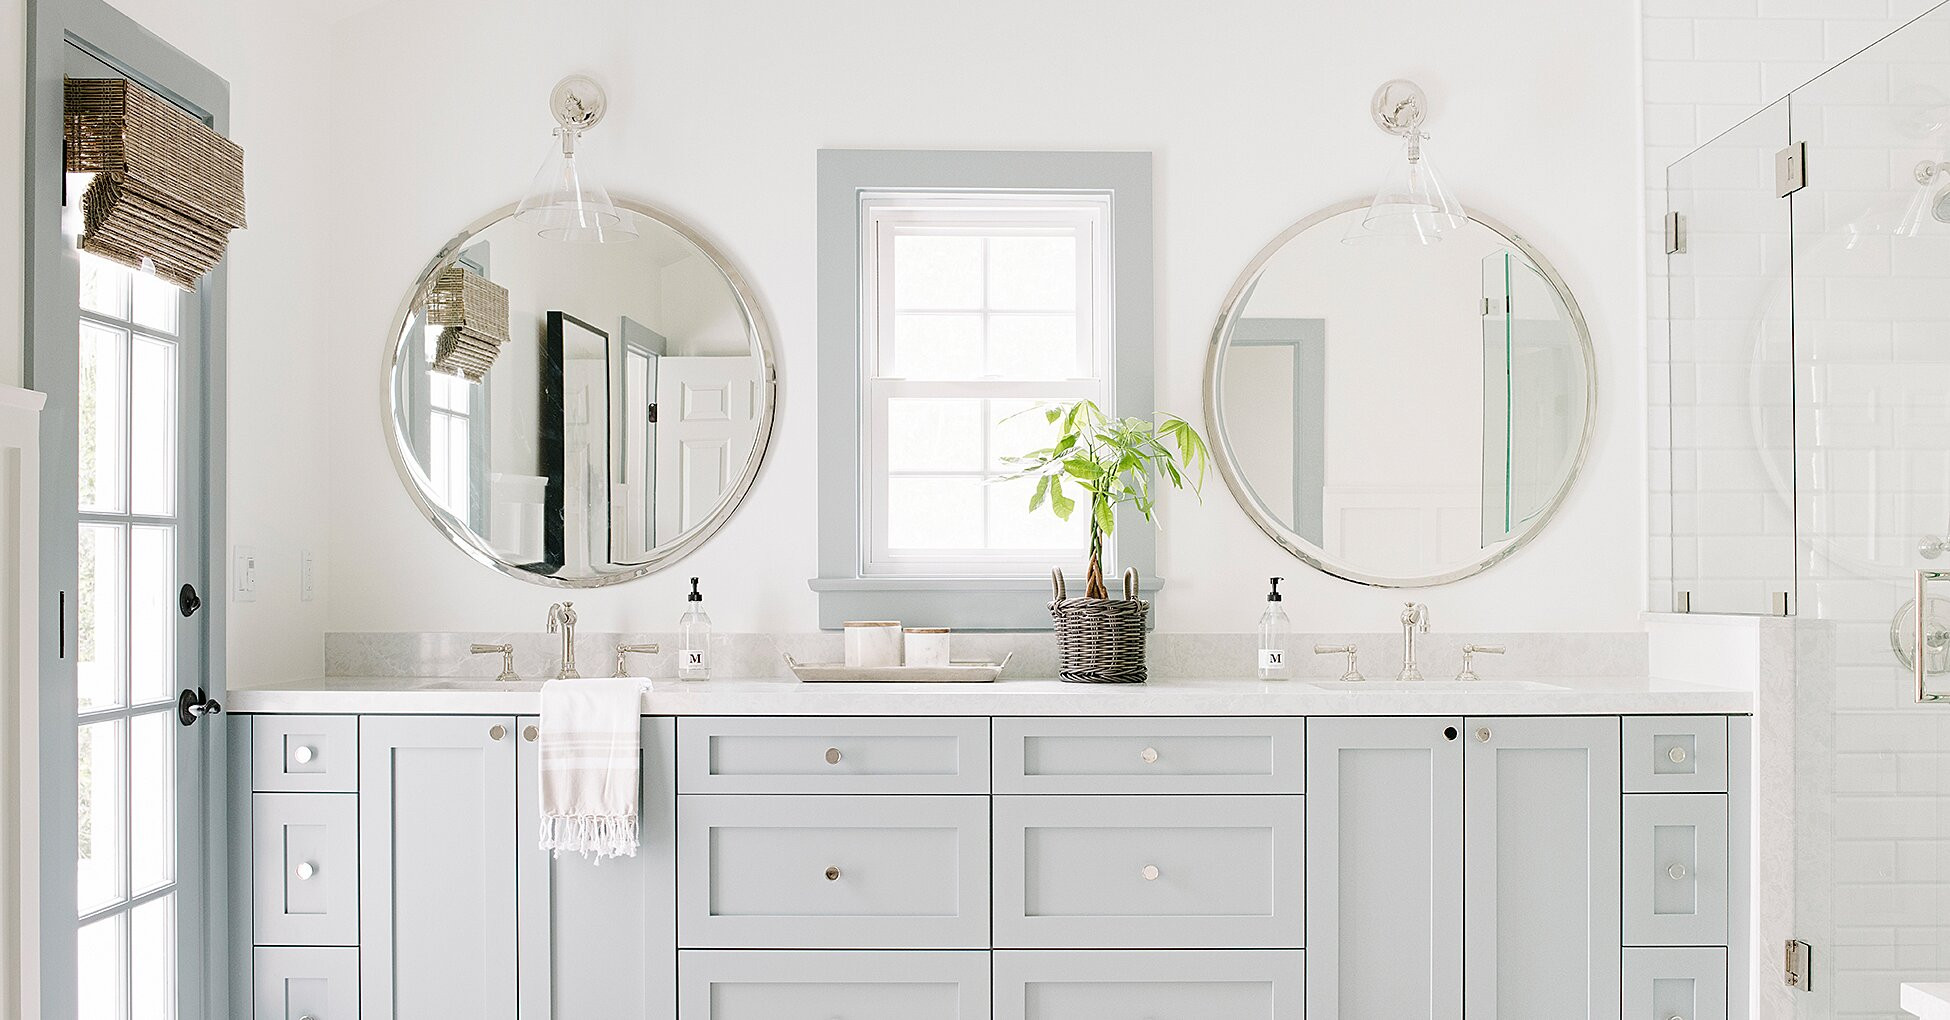 Best Bathroom Paint Colors 2020  These Are the Most Popular Bathroom Paint Colors for 2020